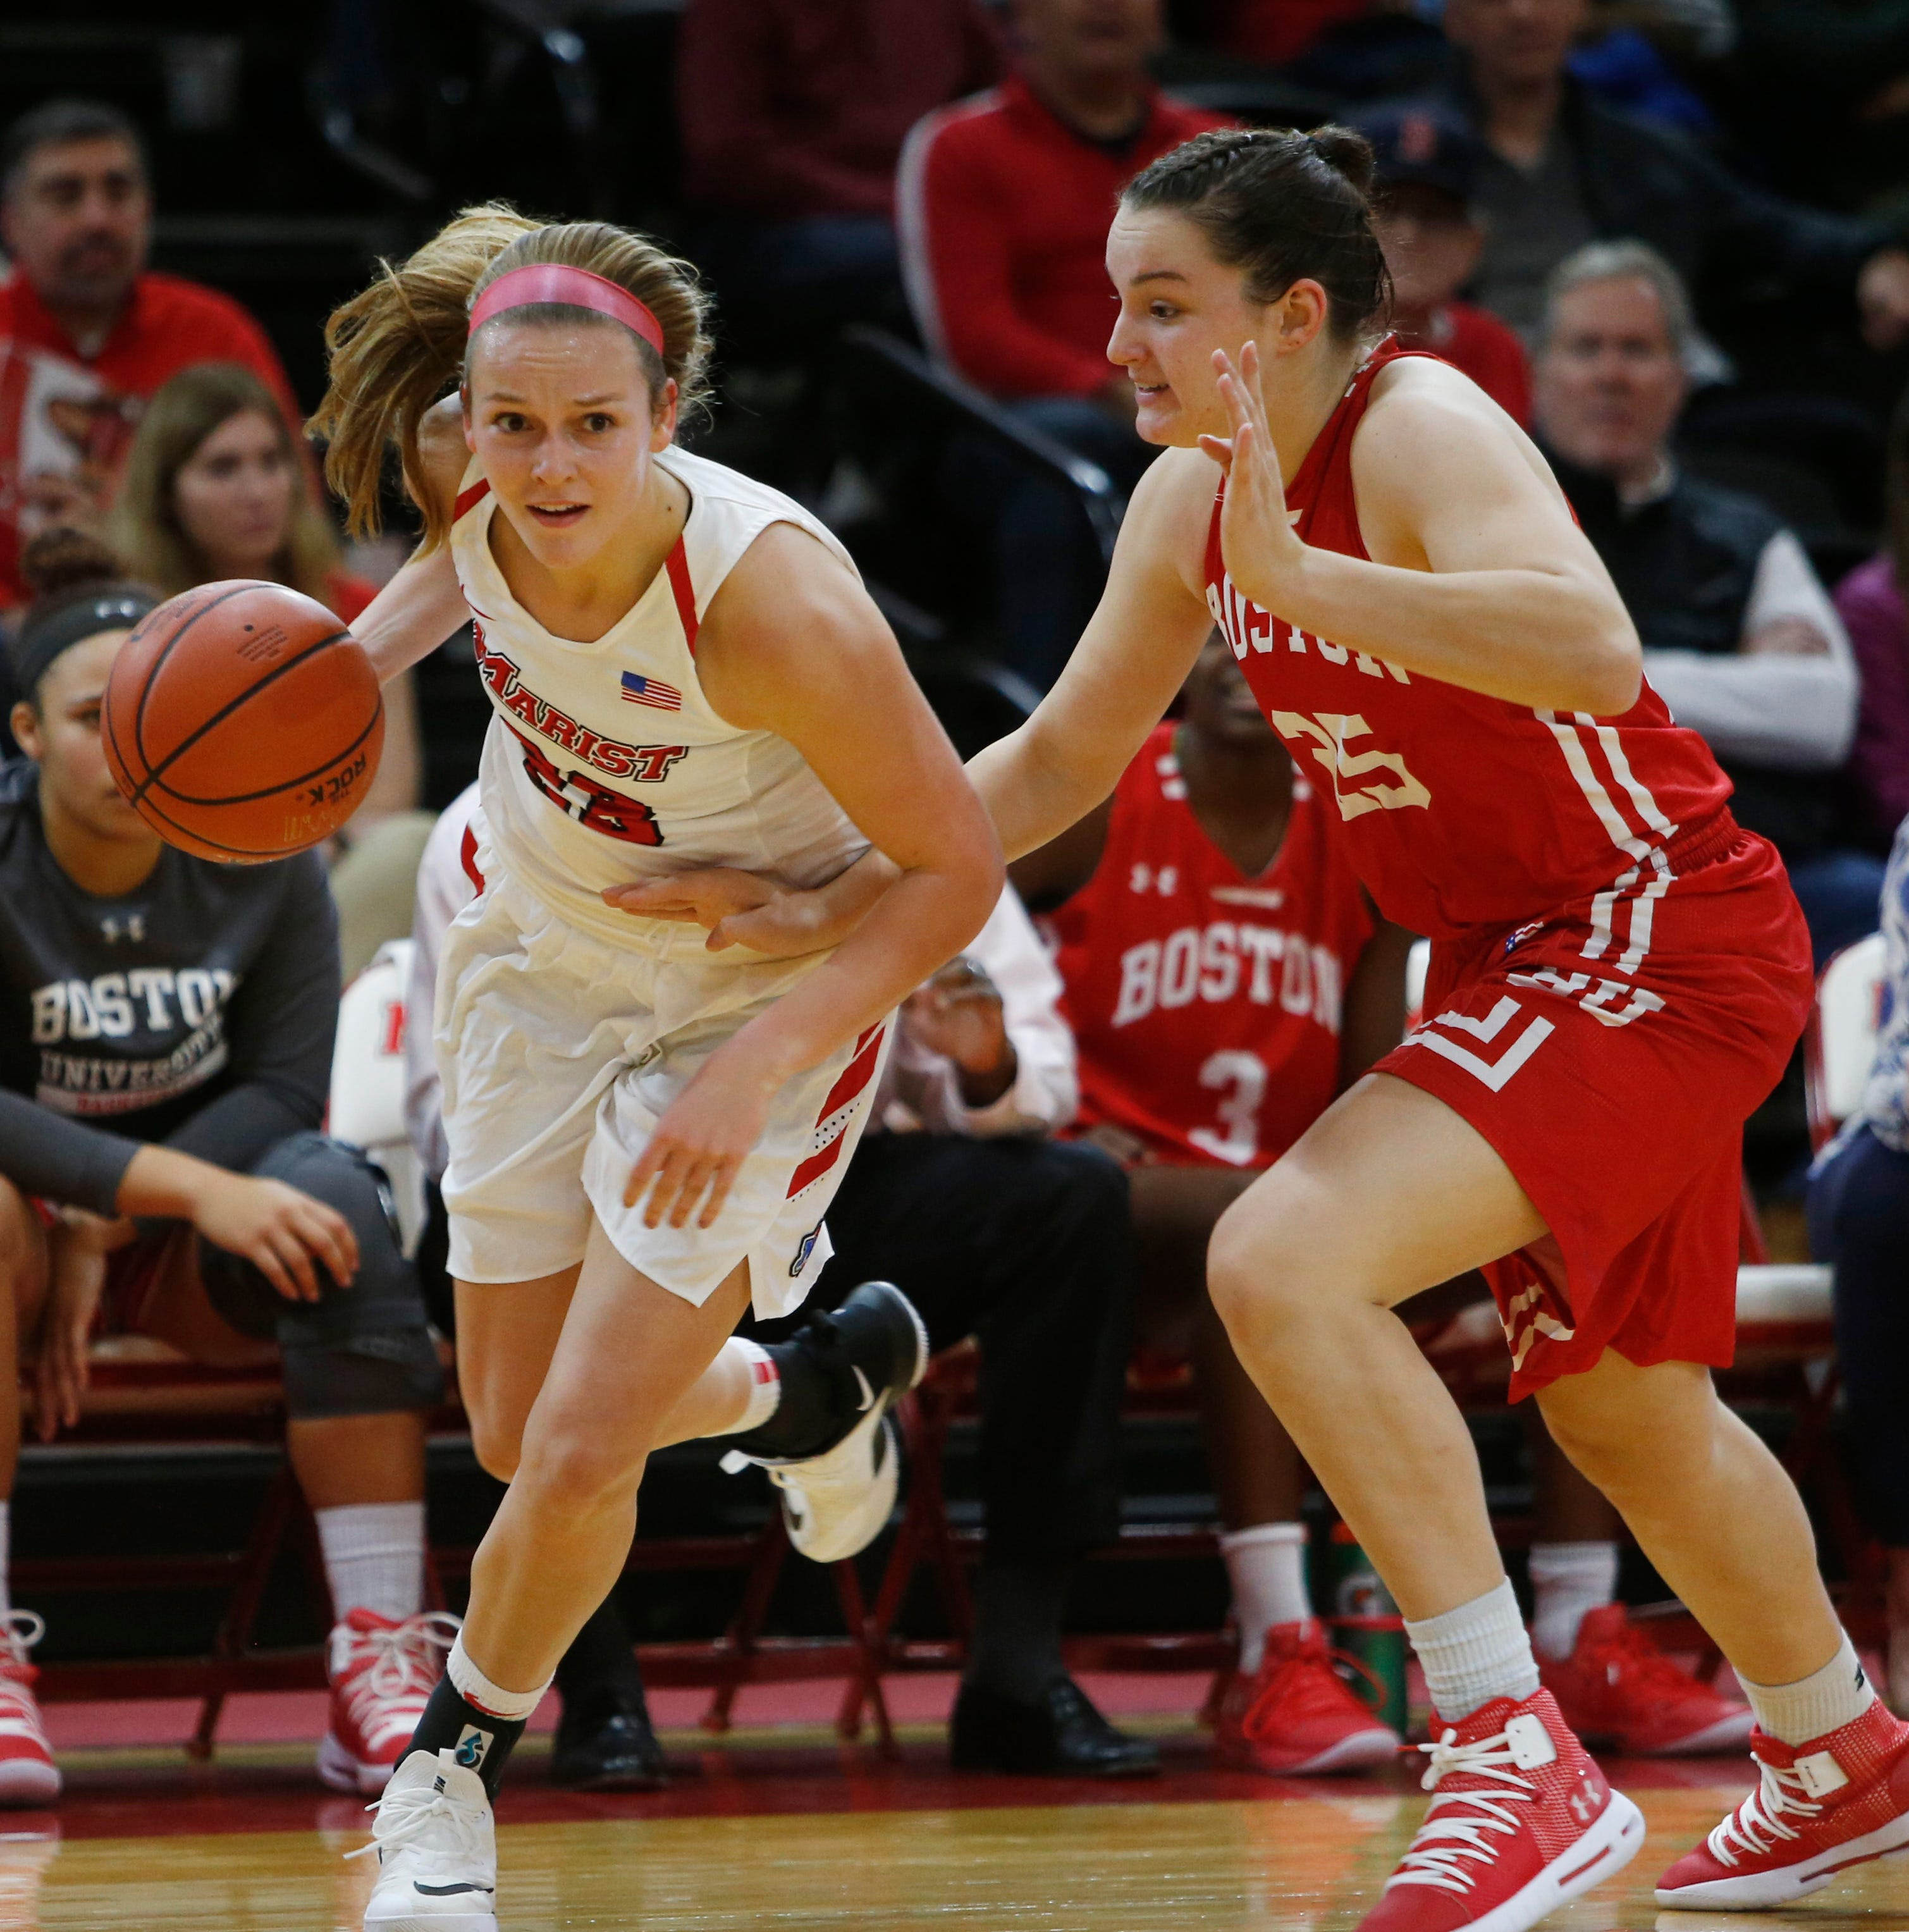 Marist hosts Temple in rematch, seeking 3-0 start